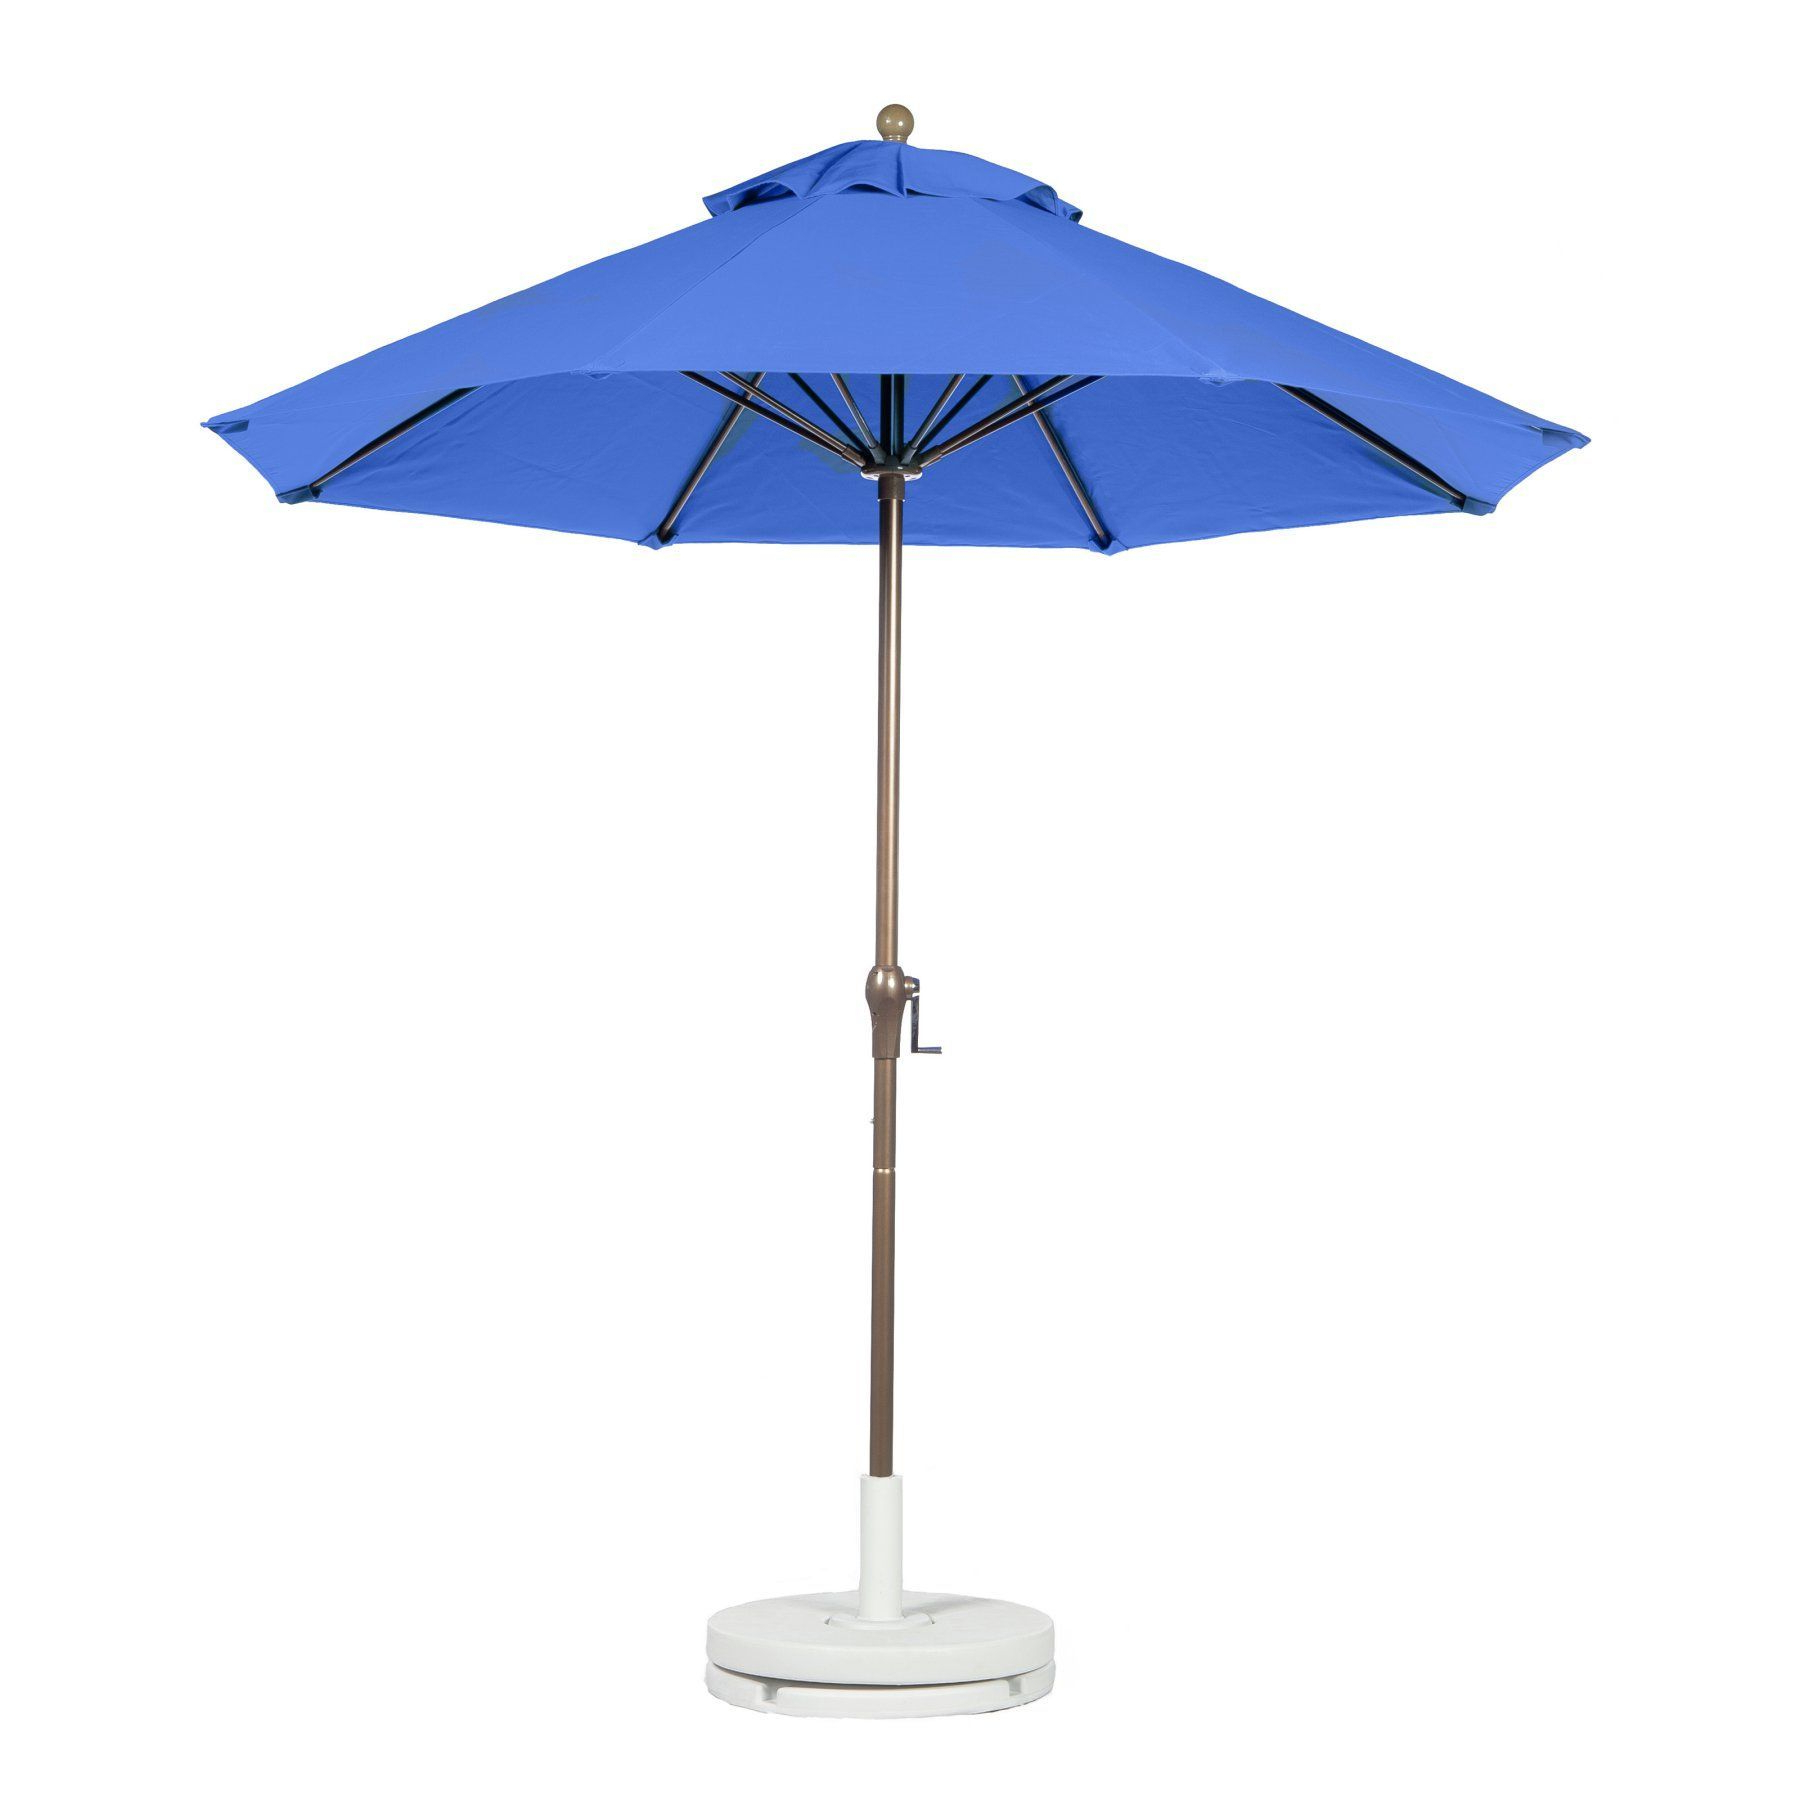 Frankford Umbrella Monterey Collection 7.5 Ft (View 6 of 20)